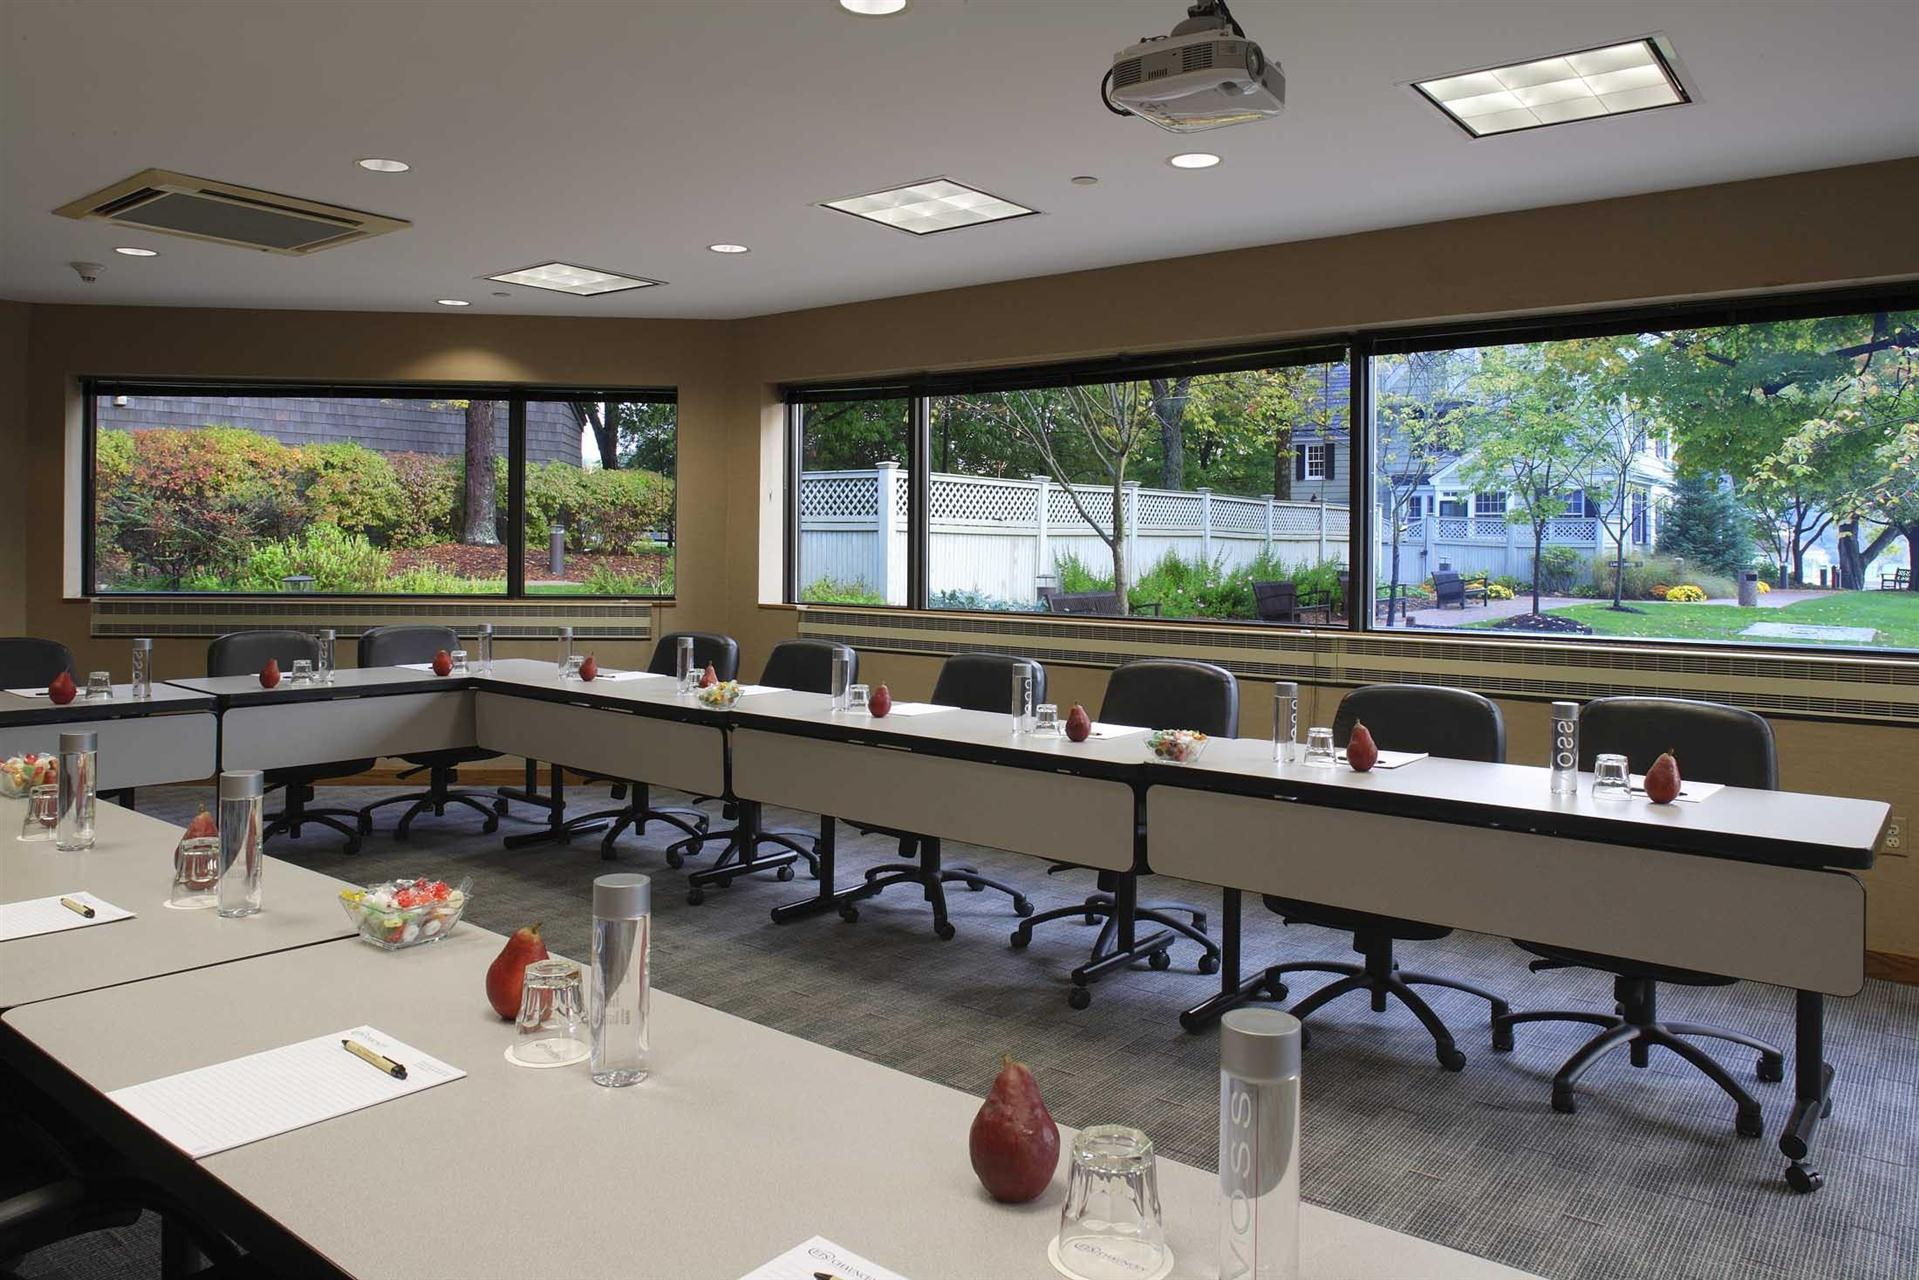 Meetings & Events at Chauncey Hotel & Conference Center Princeton